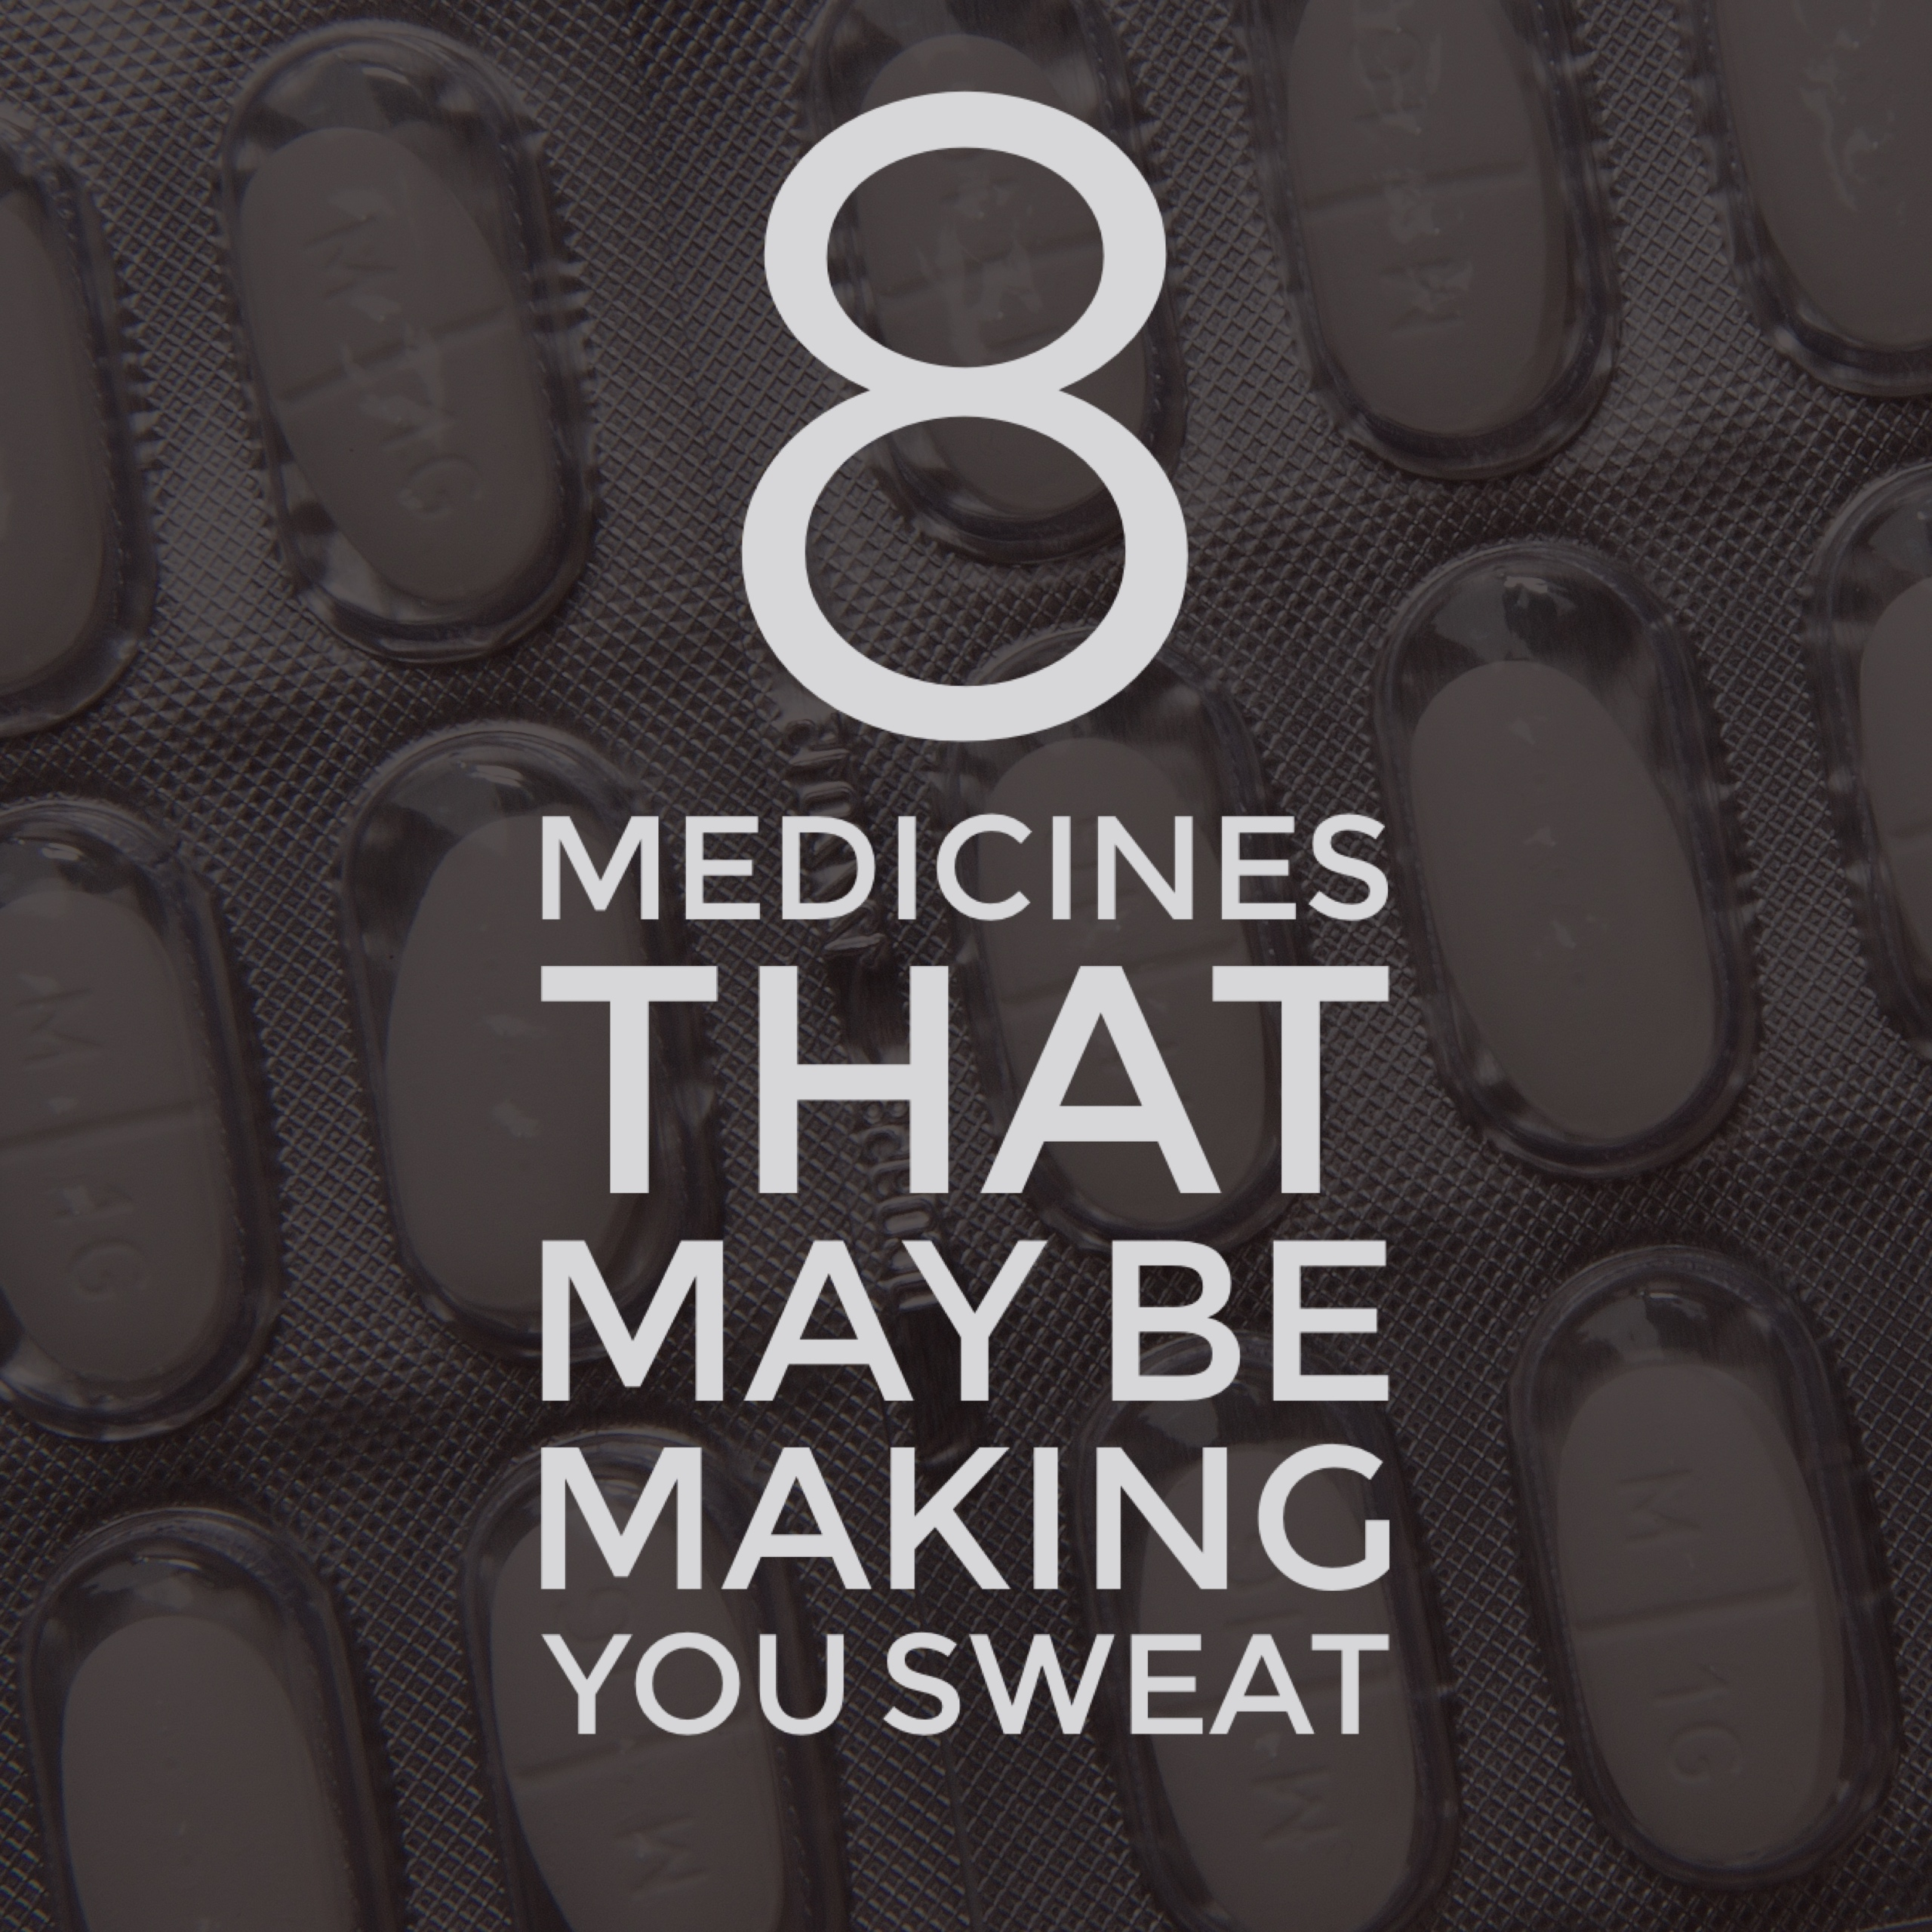 8 medicines that may be making you sweat at wicked sheets